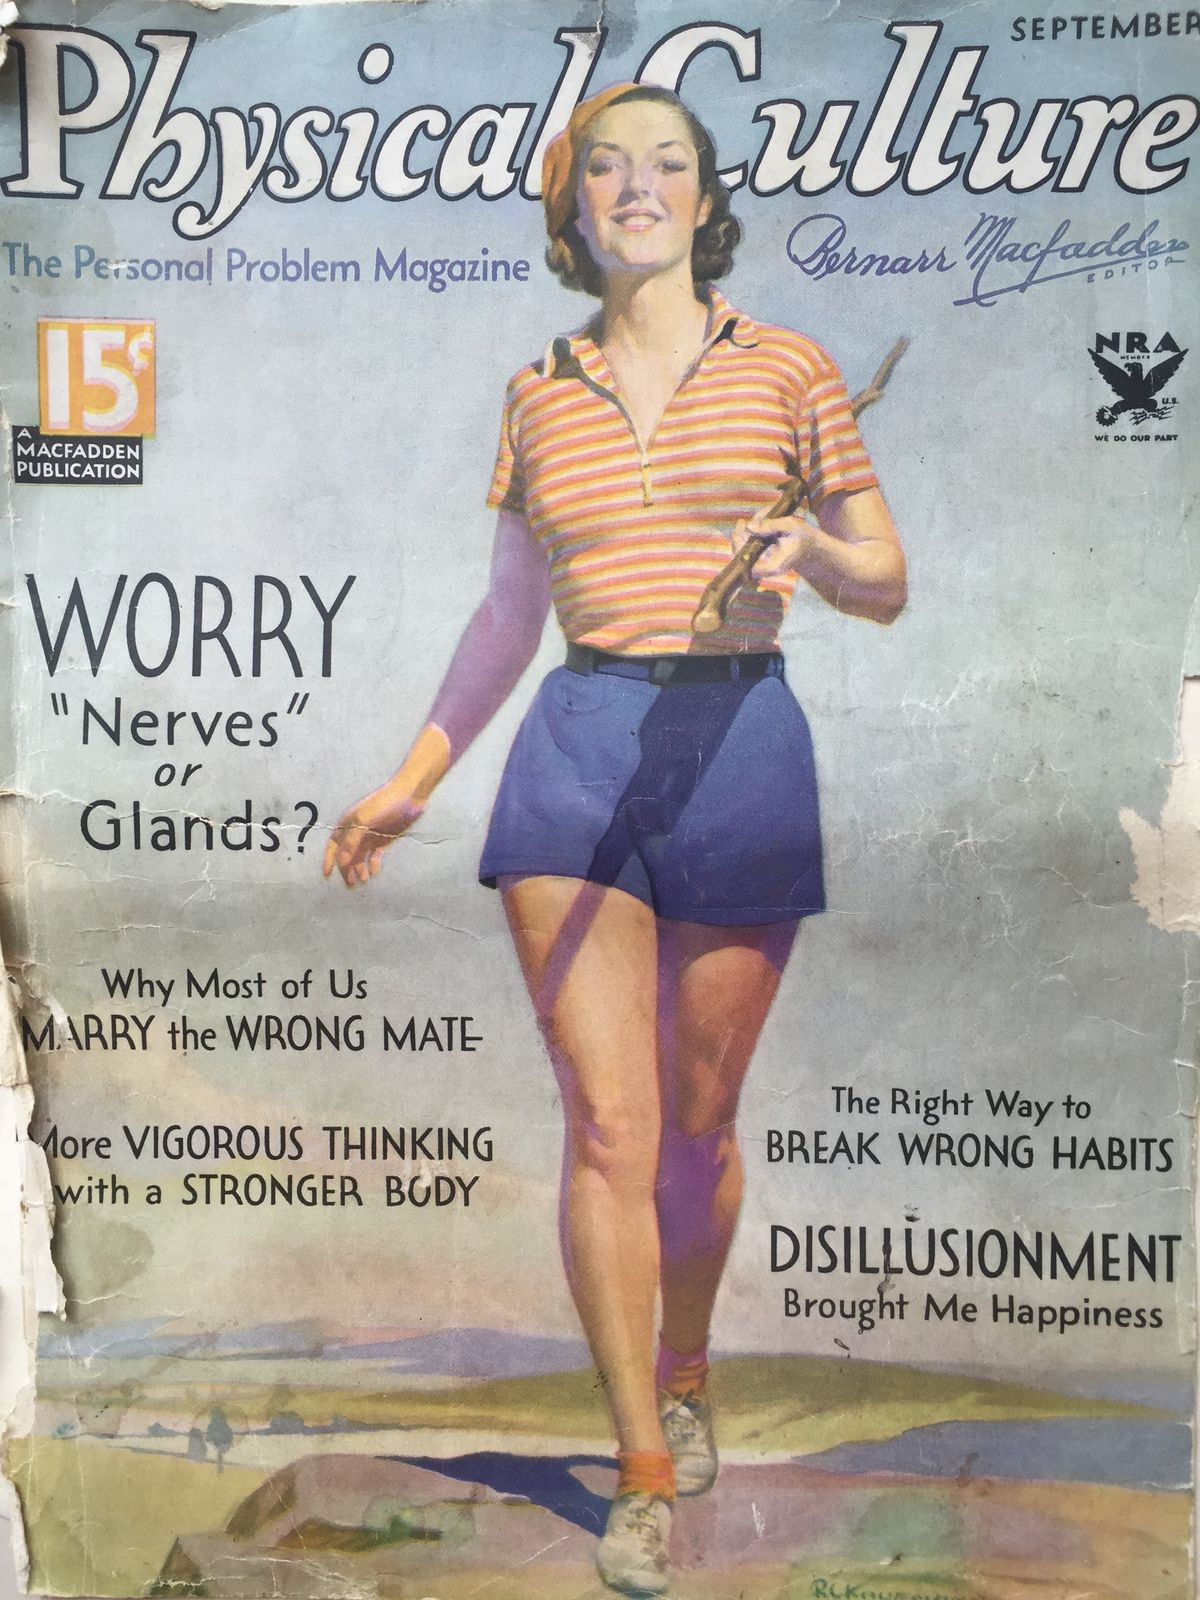 Photos And Articles From A 1934 Physical Culture Magazine